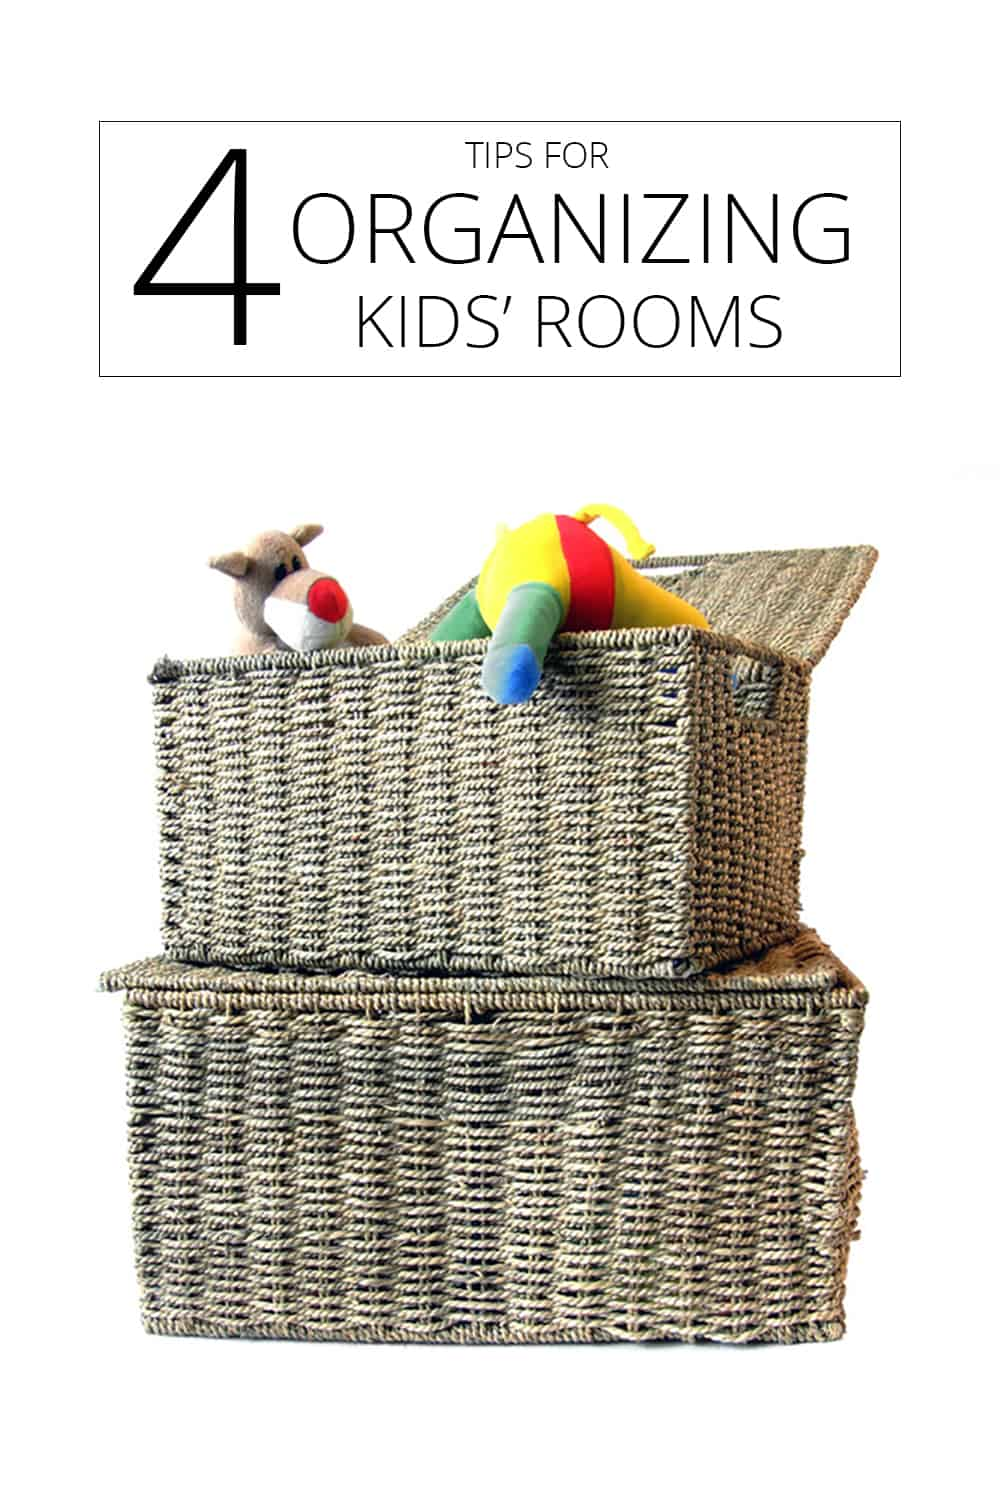 4 tips for organizing kids' rooms